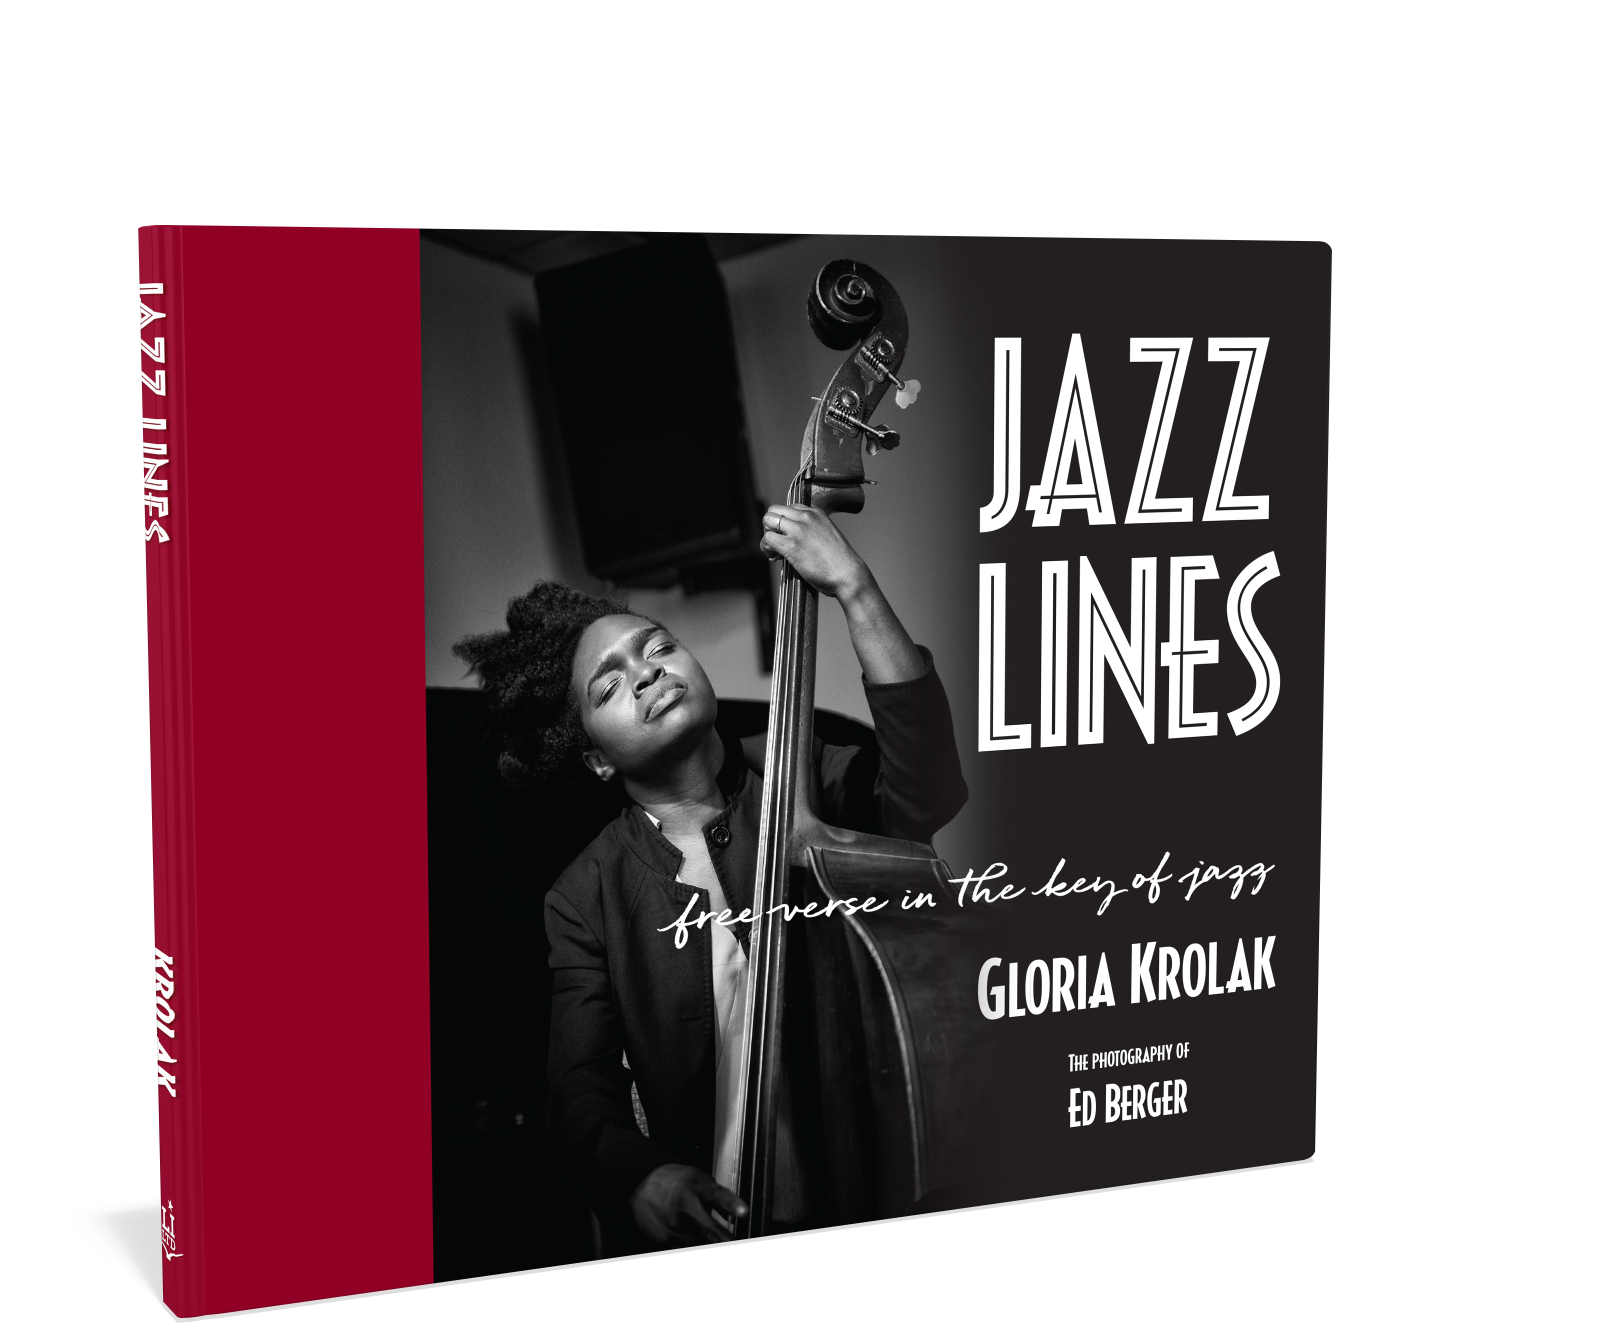 Cover: Jazz Lines photography and poetry by Gloria Krolak Starbooks